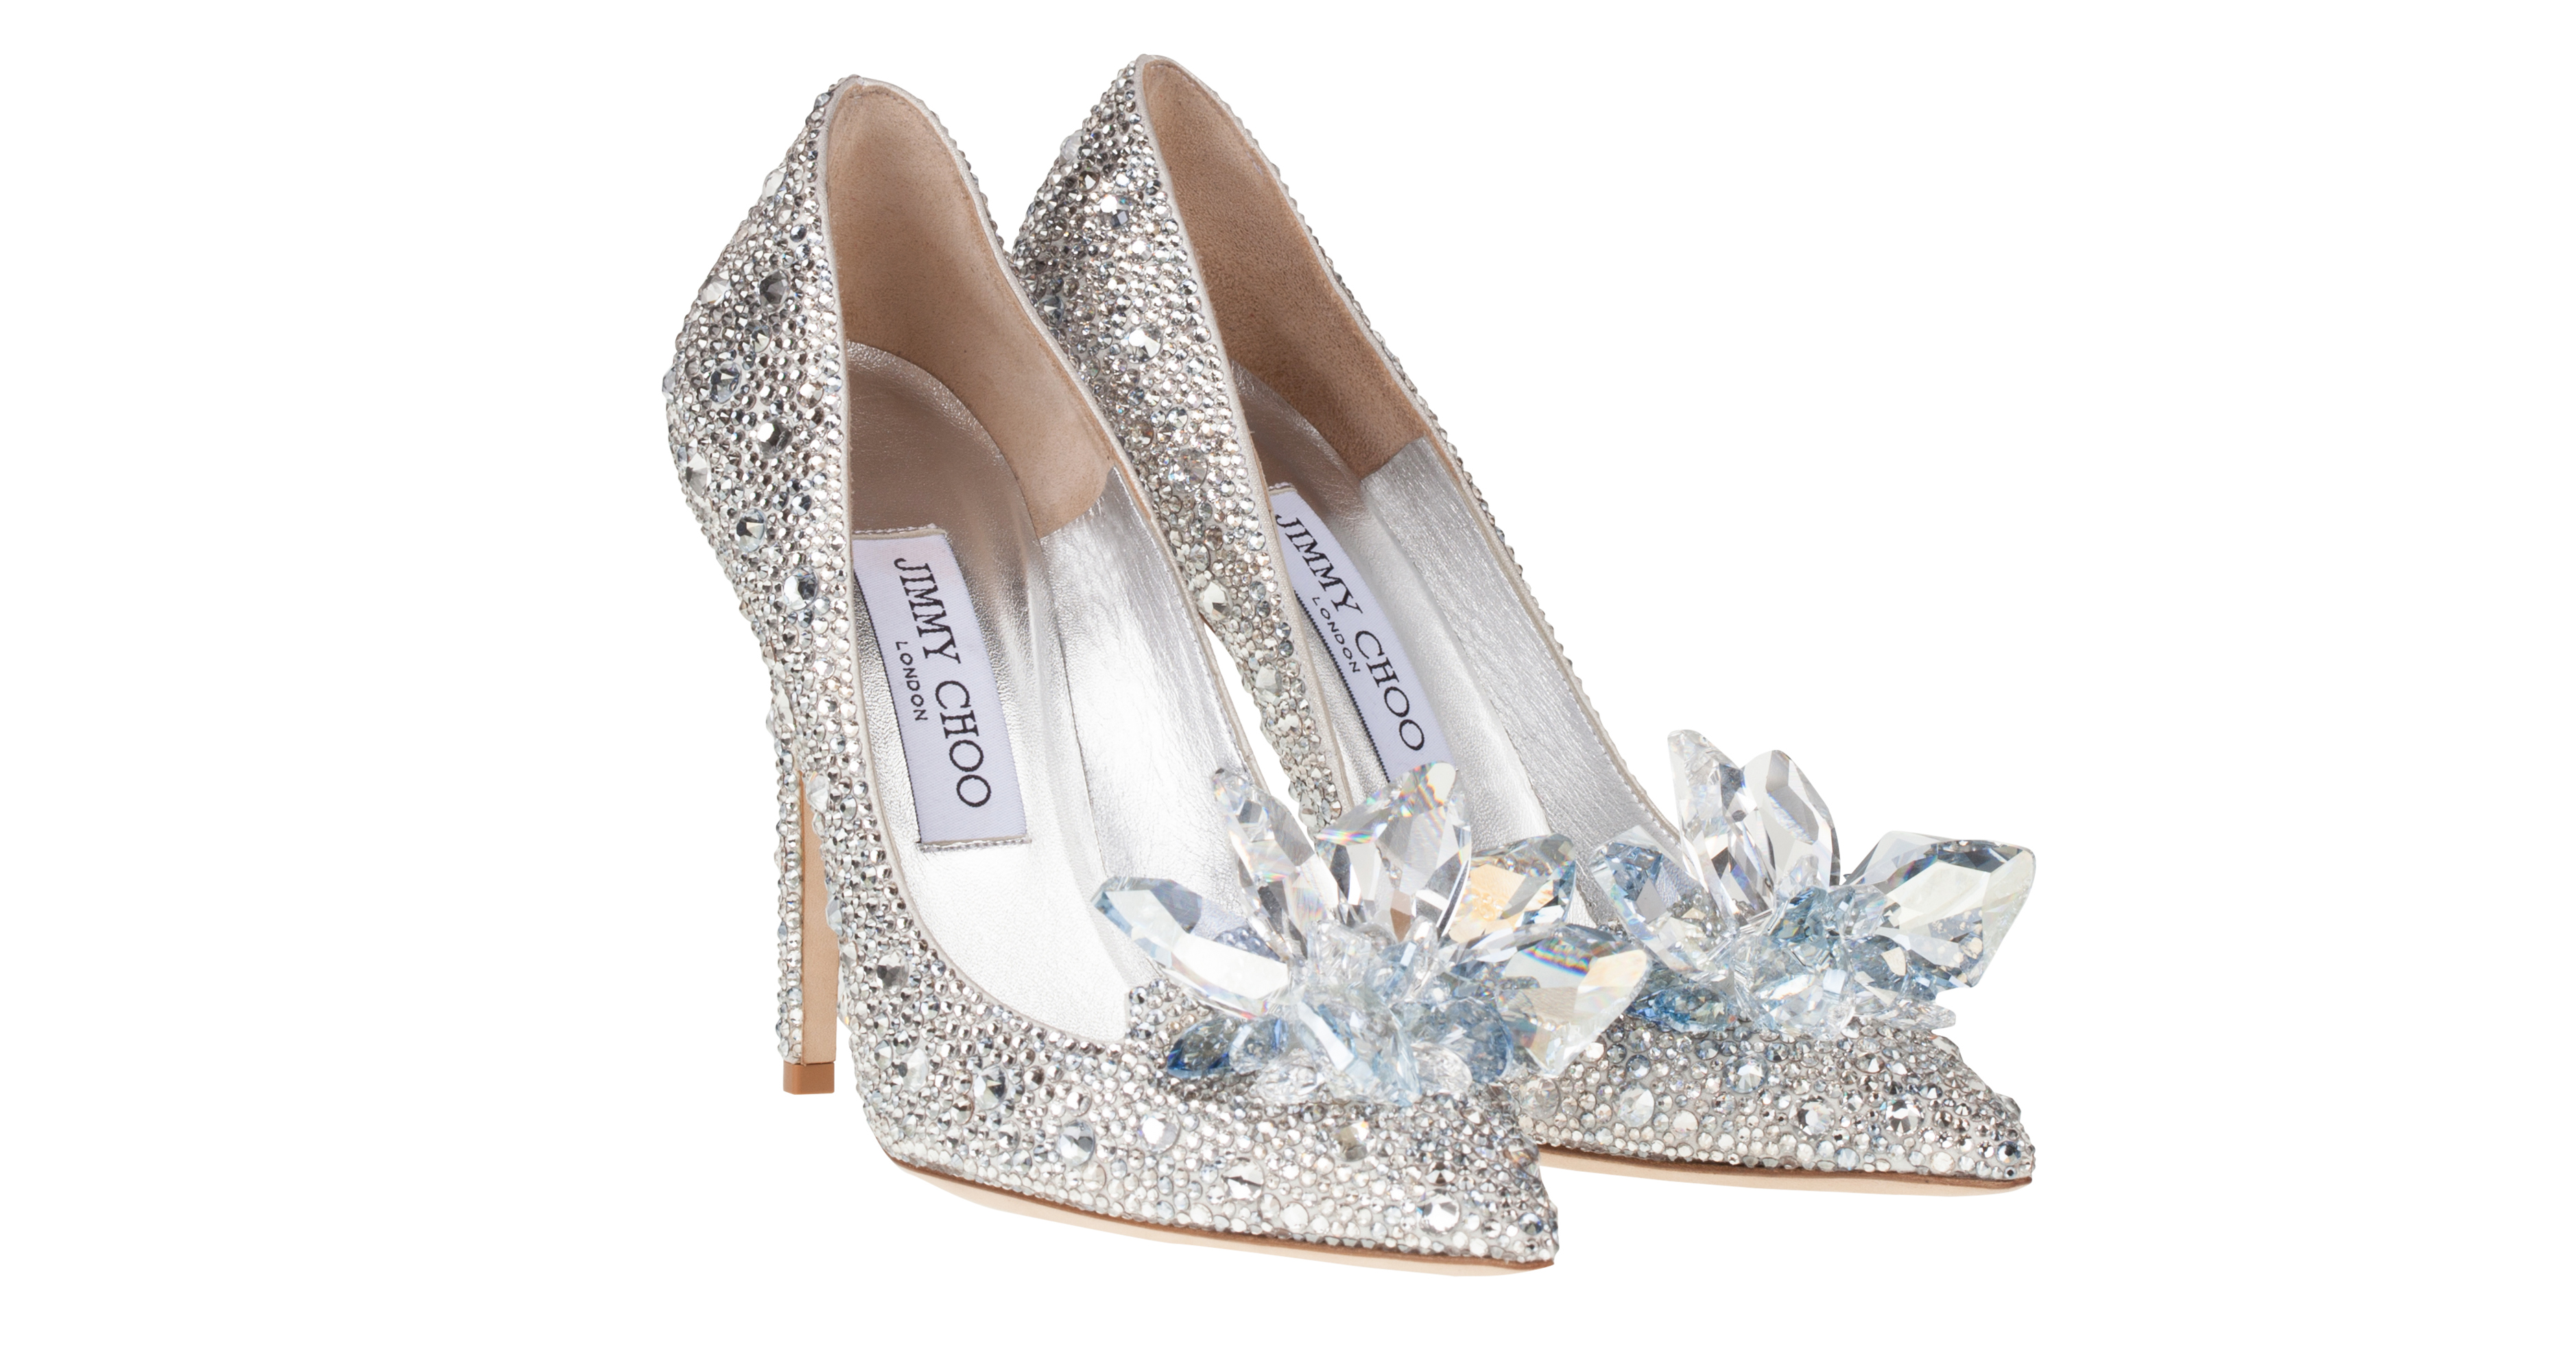 Jimmy Choo creates modern design Cinderella Shoe worthy of Fairy tale luxury design and craftsmanship summit All About The Luxury Design And Craftsmanship Summit 2019 feature final luxury design and craftsmanship summit All About The Luxury Design And Craftsmanship Summit 2019 feature final